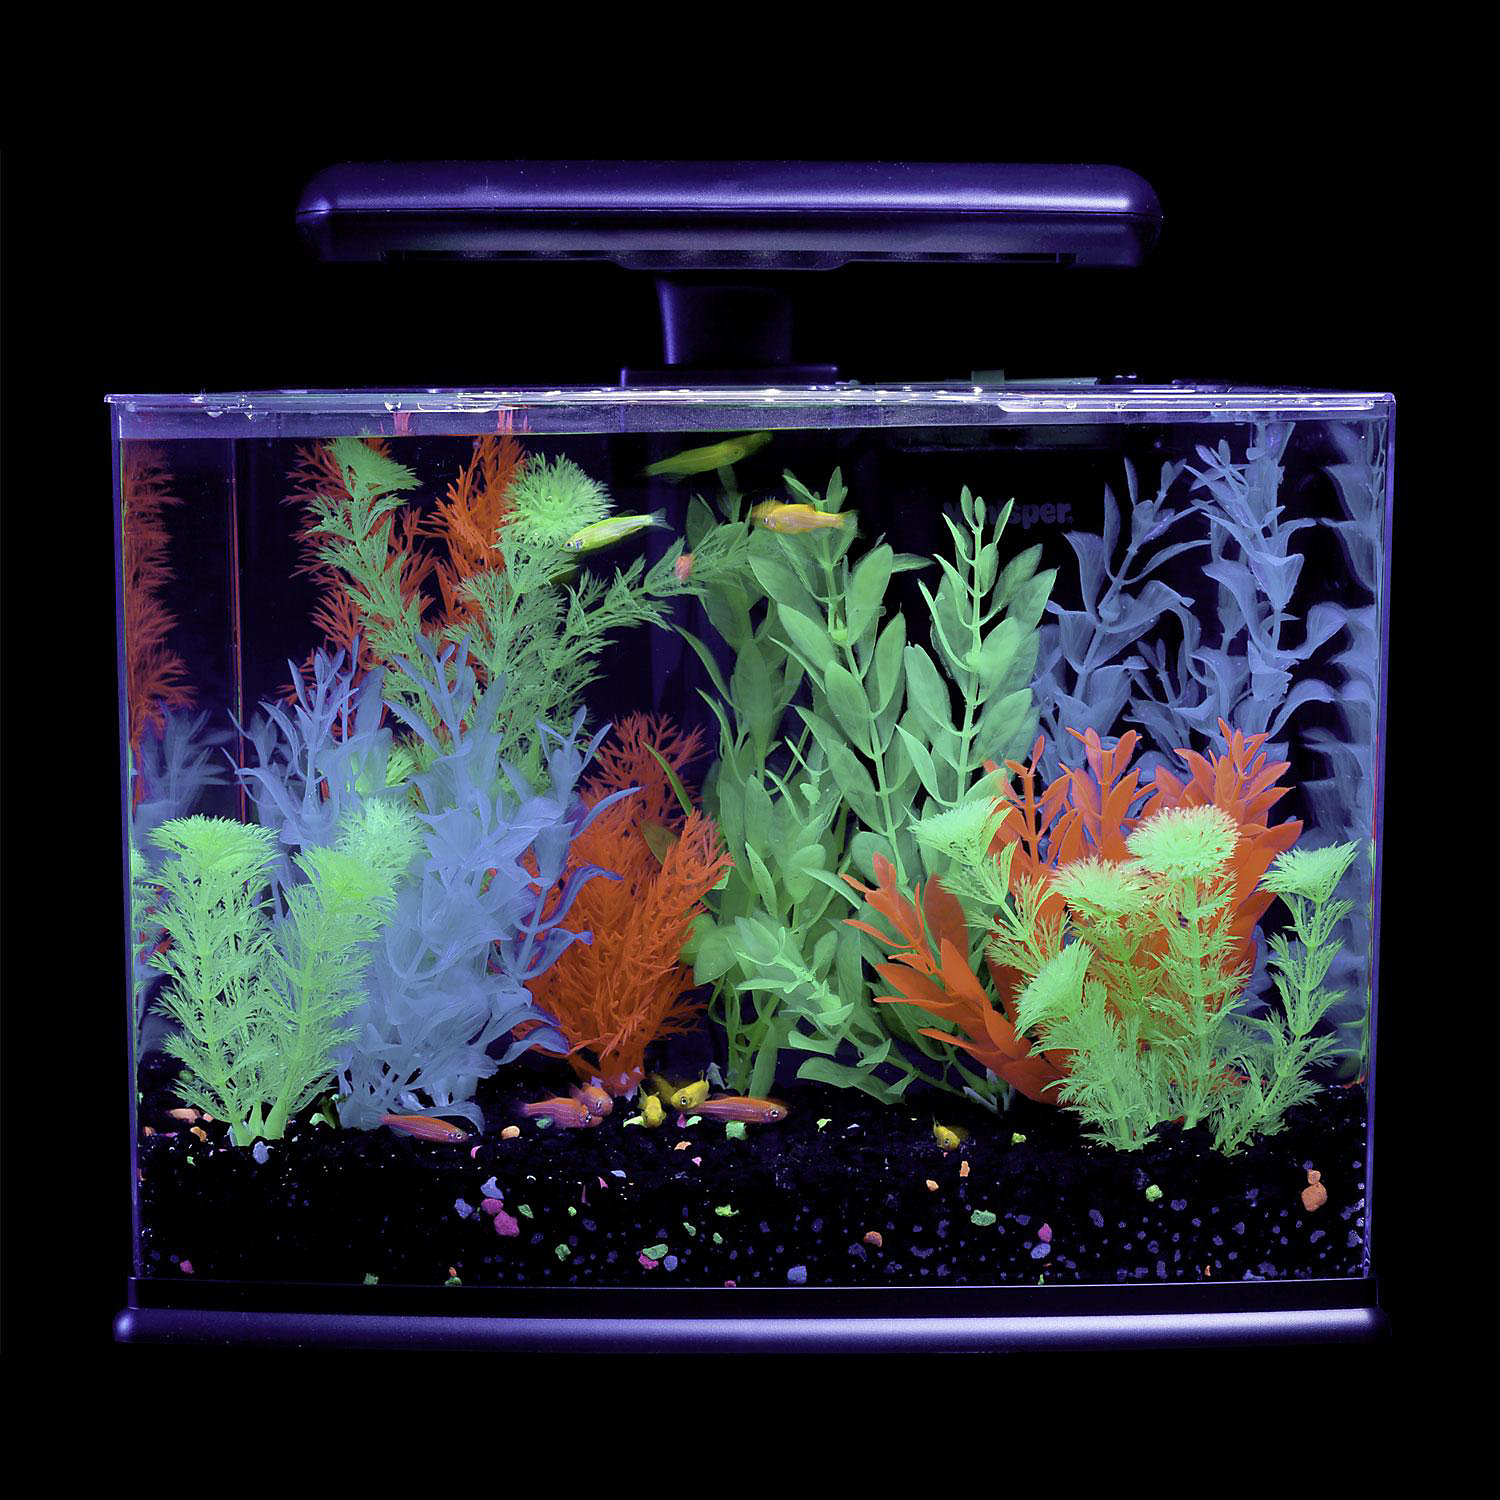 Glofish 3 Gallon Aquarium Kit 13 L X 7 W X 12 H